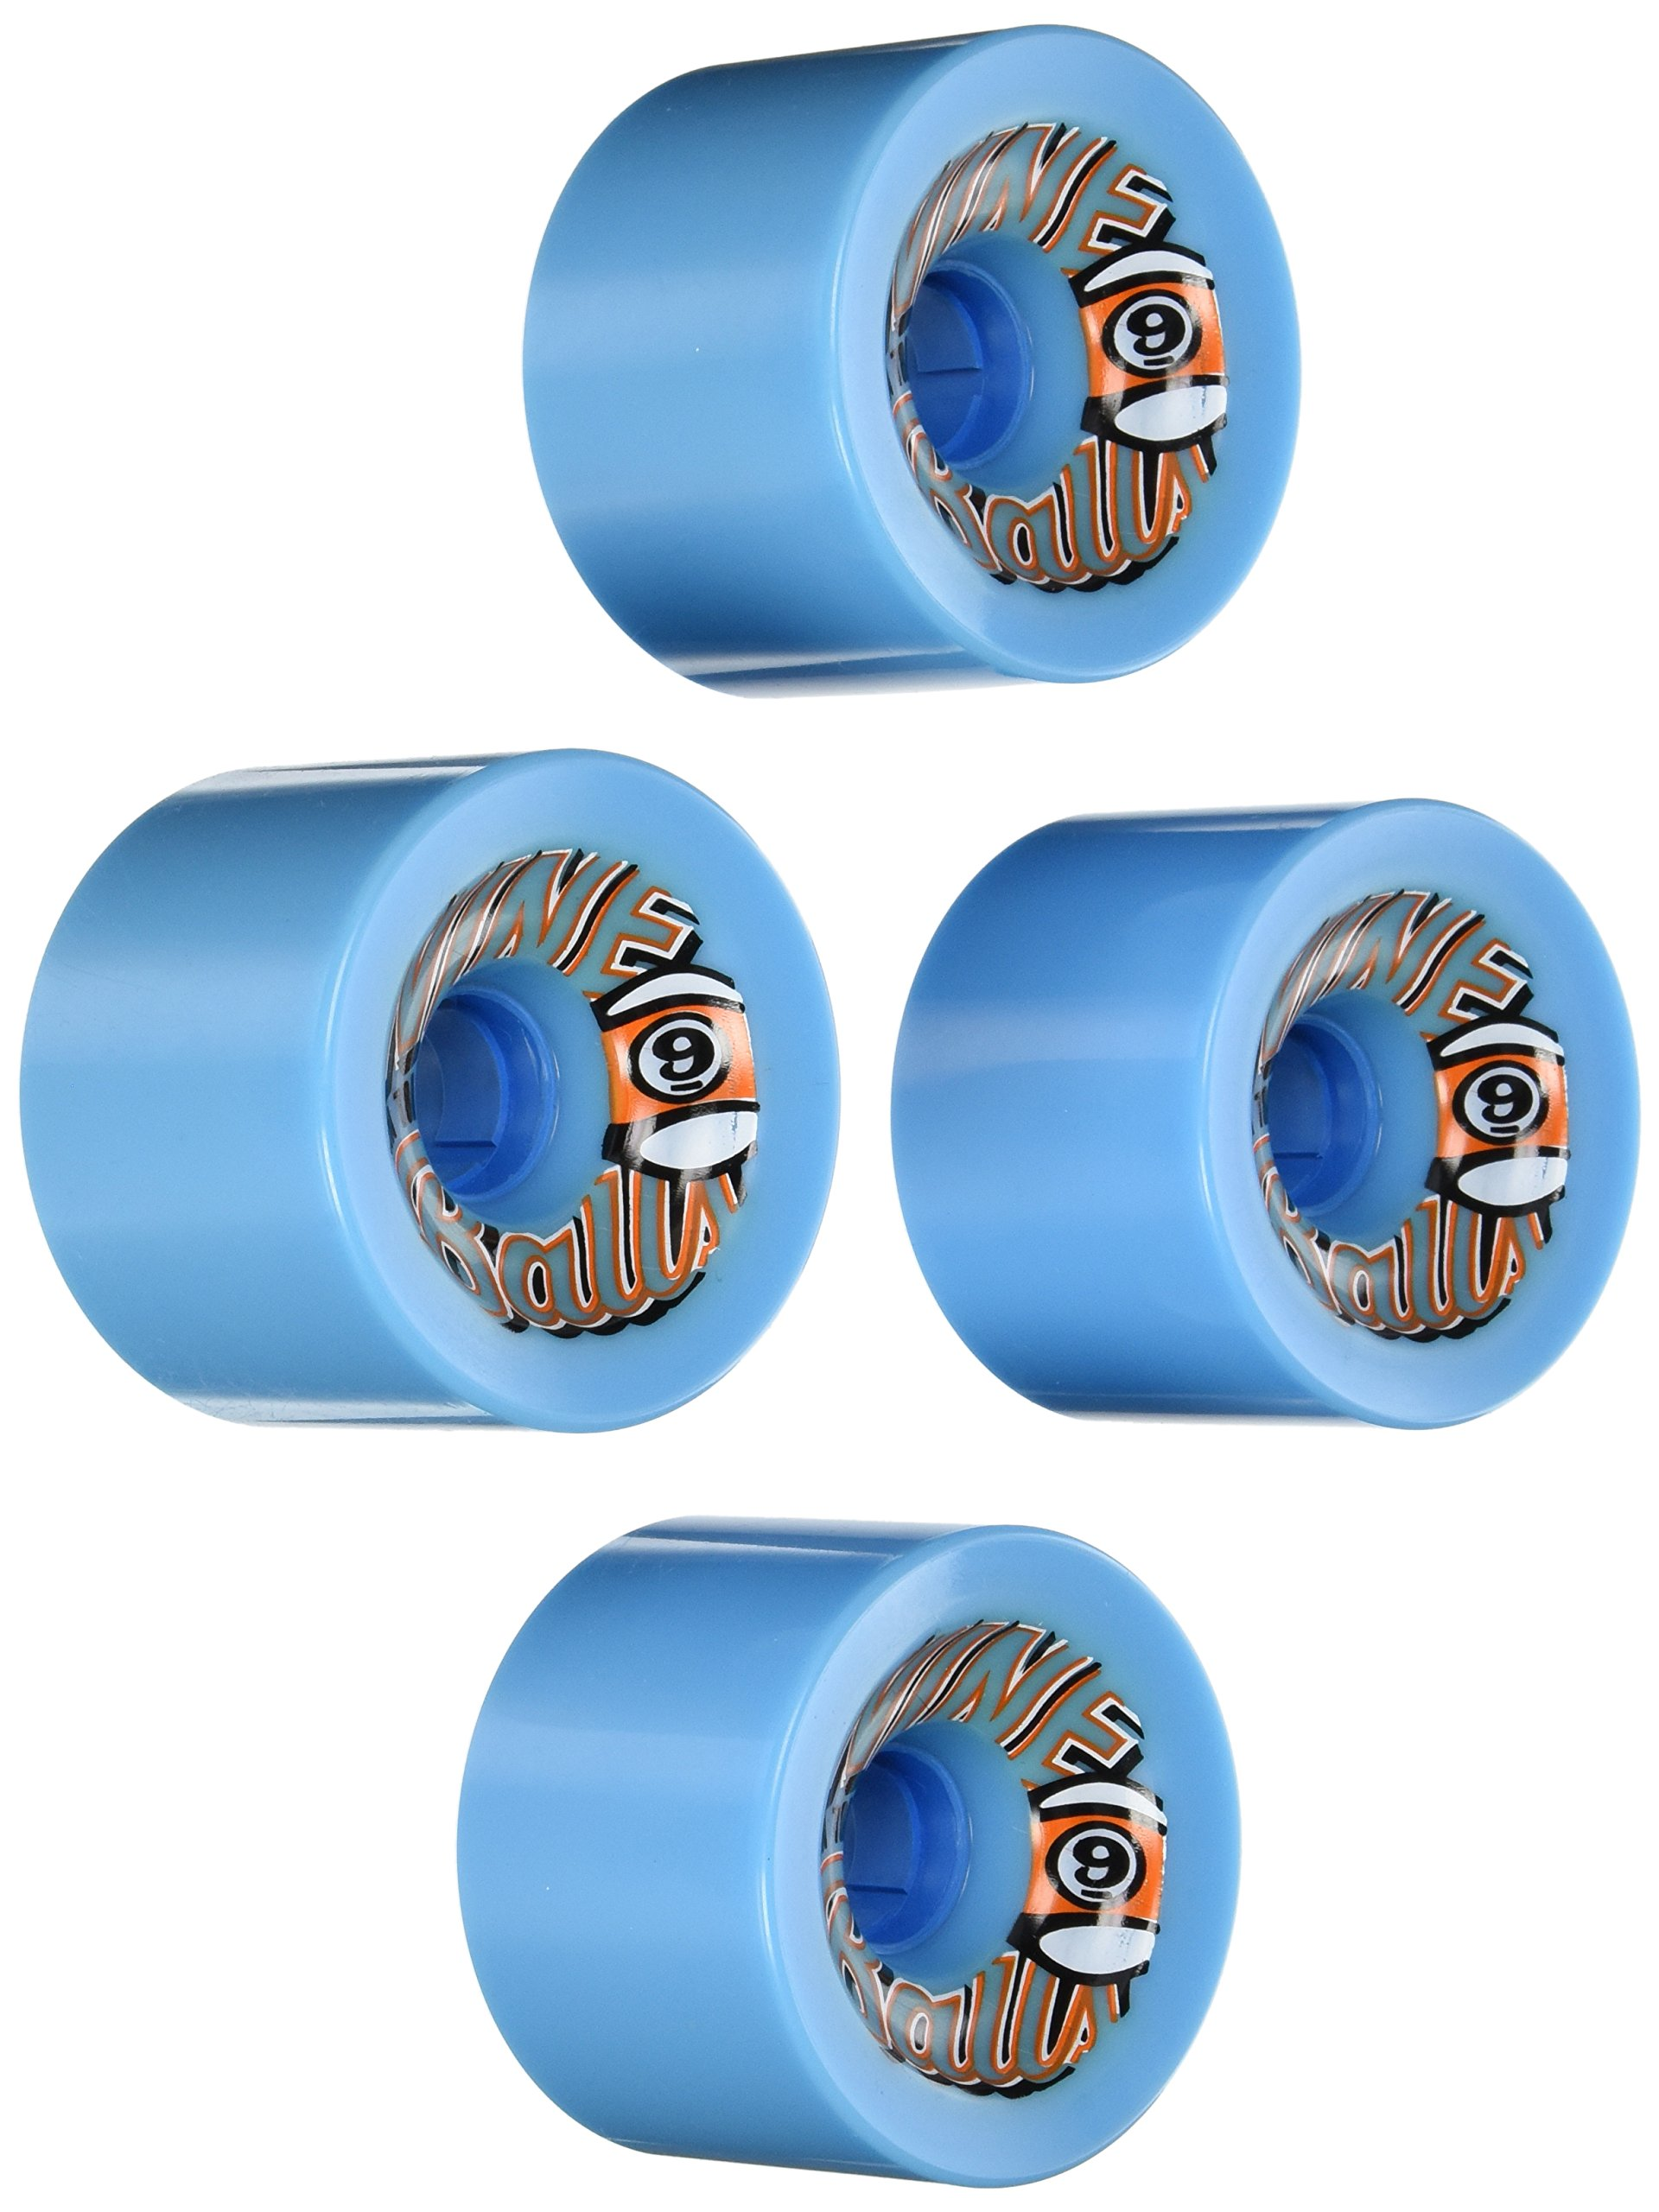 Sector 9 Nueve Bola 74Mm 78A (4)